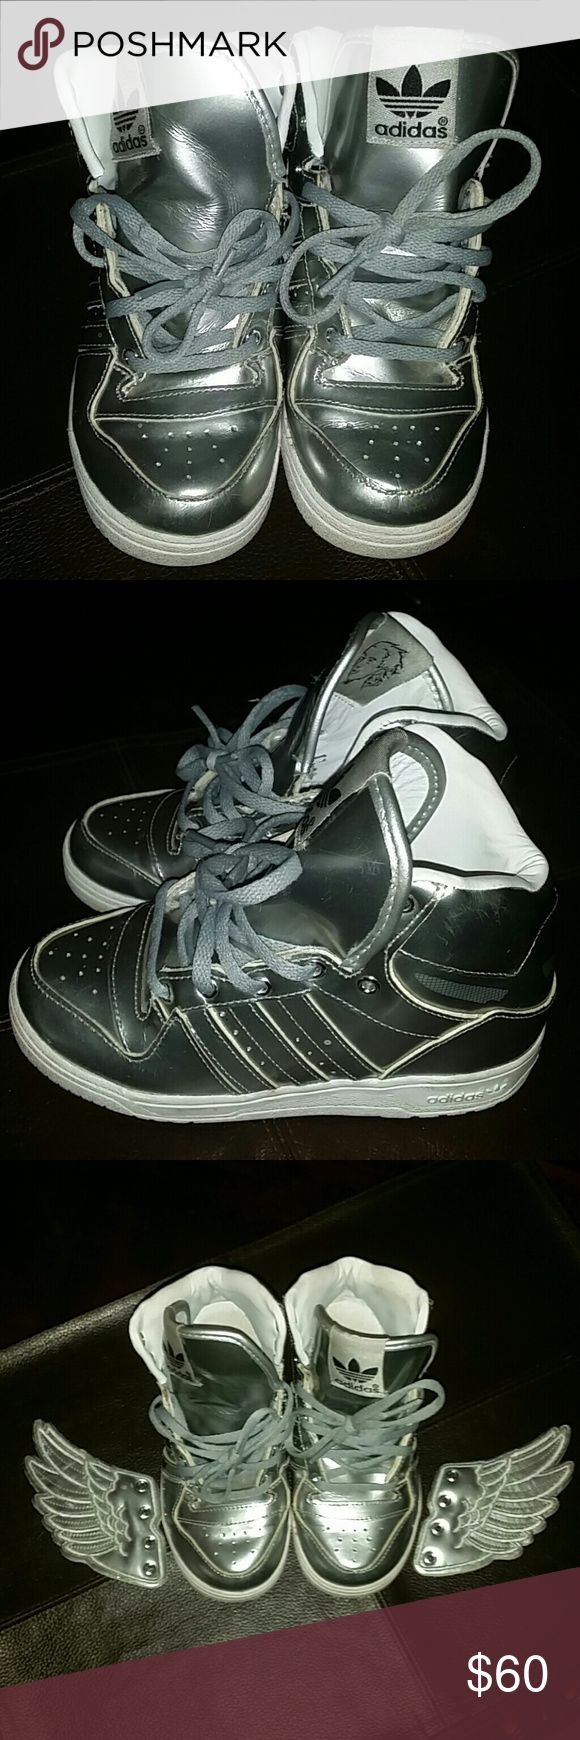 Silver Jeremy Scott silver Adidas Toddler boy/girl Jeremy Scott silver Adidas with removable wings. Shoes have been lightly used still in good condition. Size is 10 Jeremy Scott x Adidas Shoes Sneakers